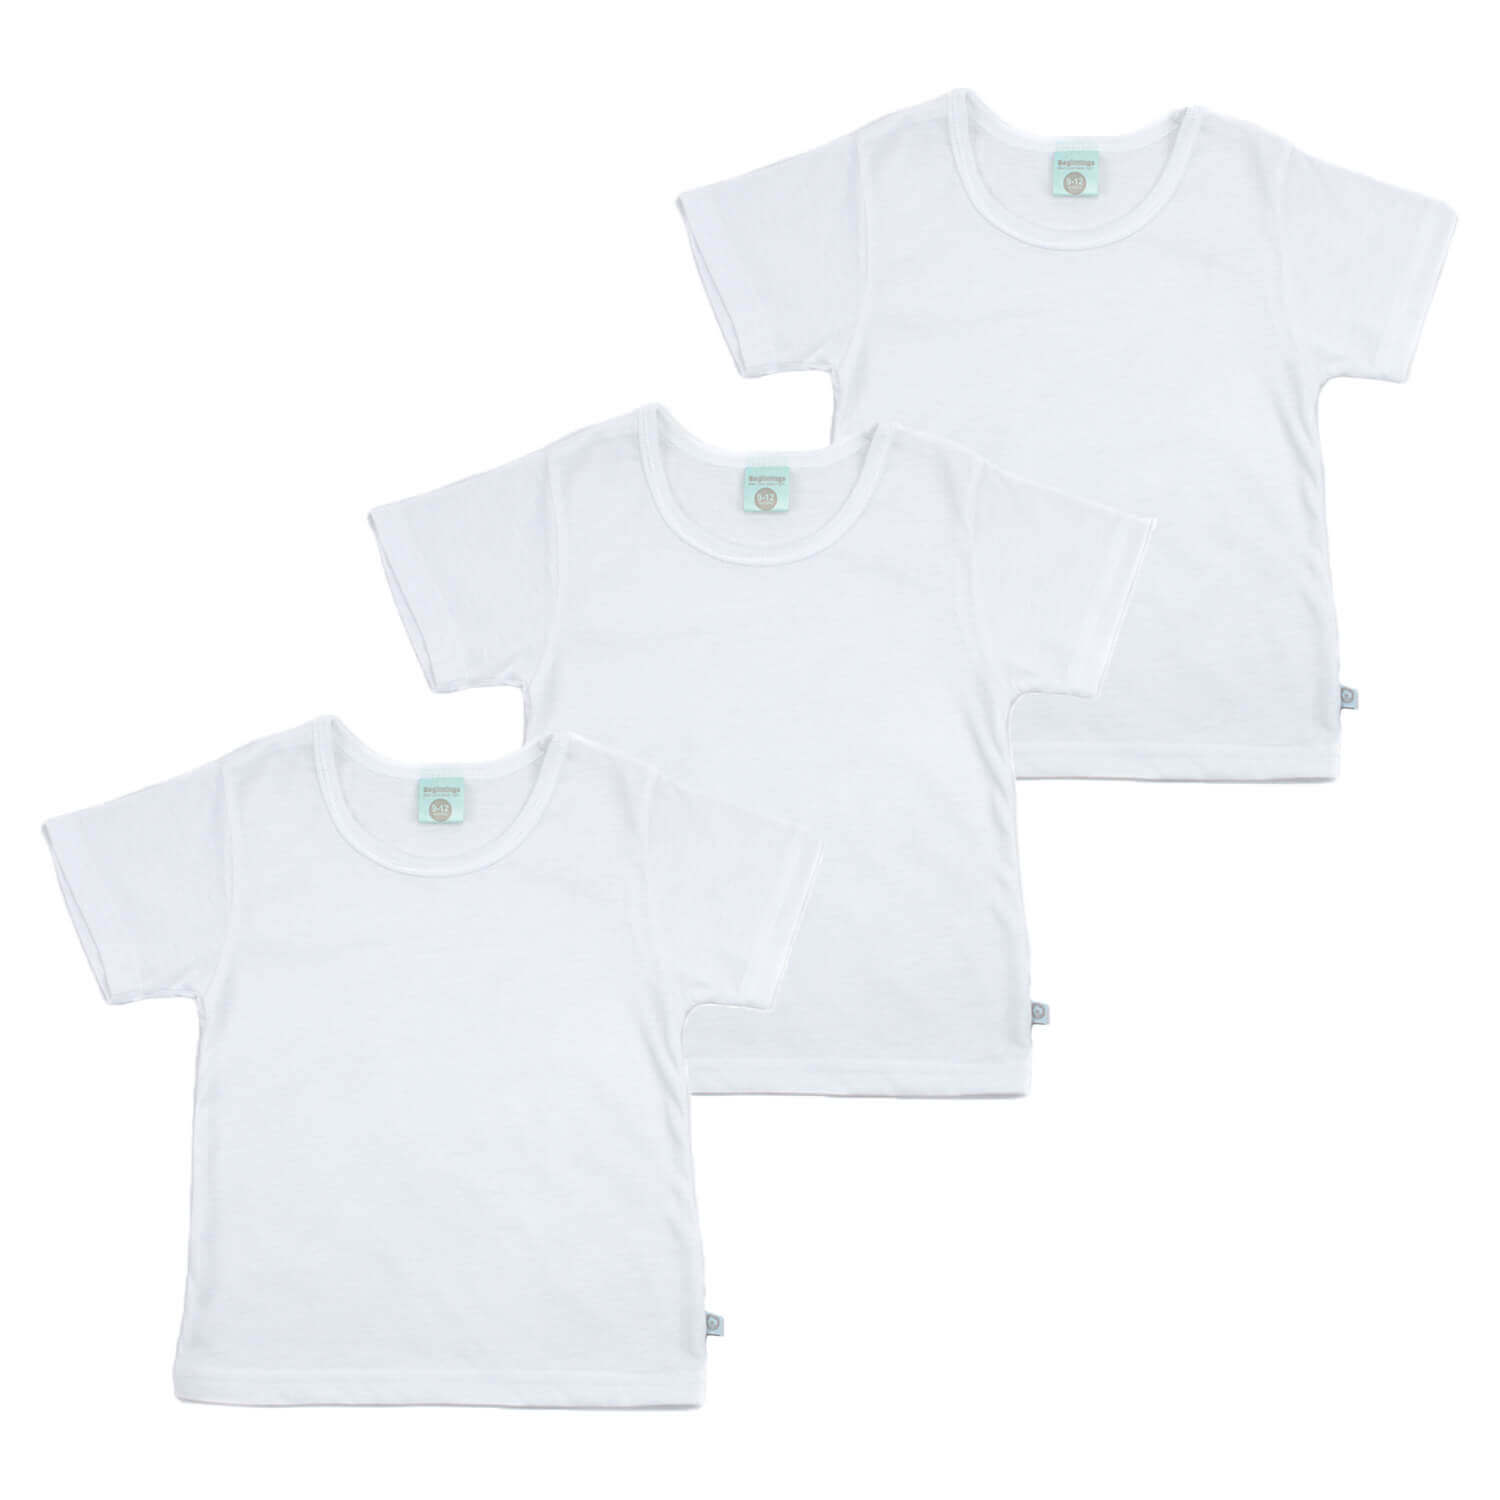 (Unisex) T-shirt Pack (3pcs)